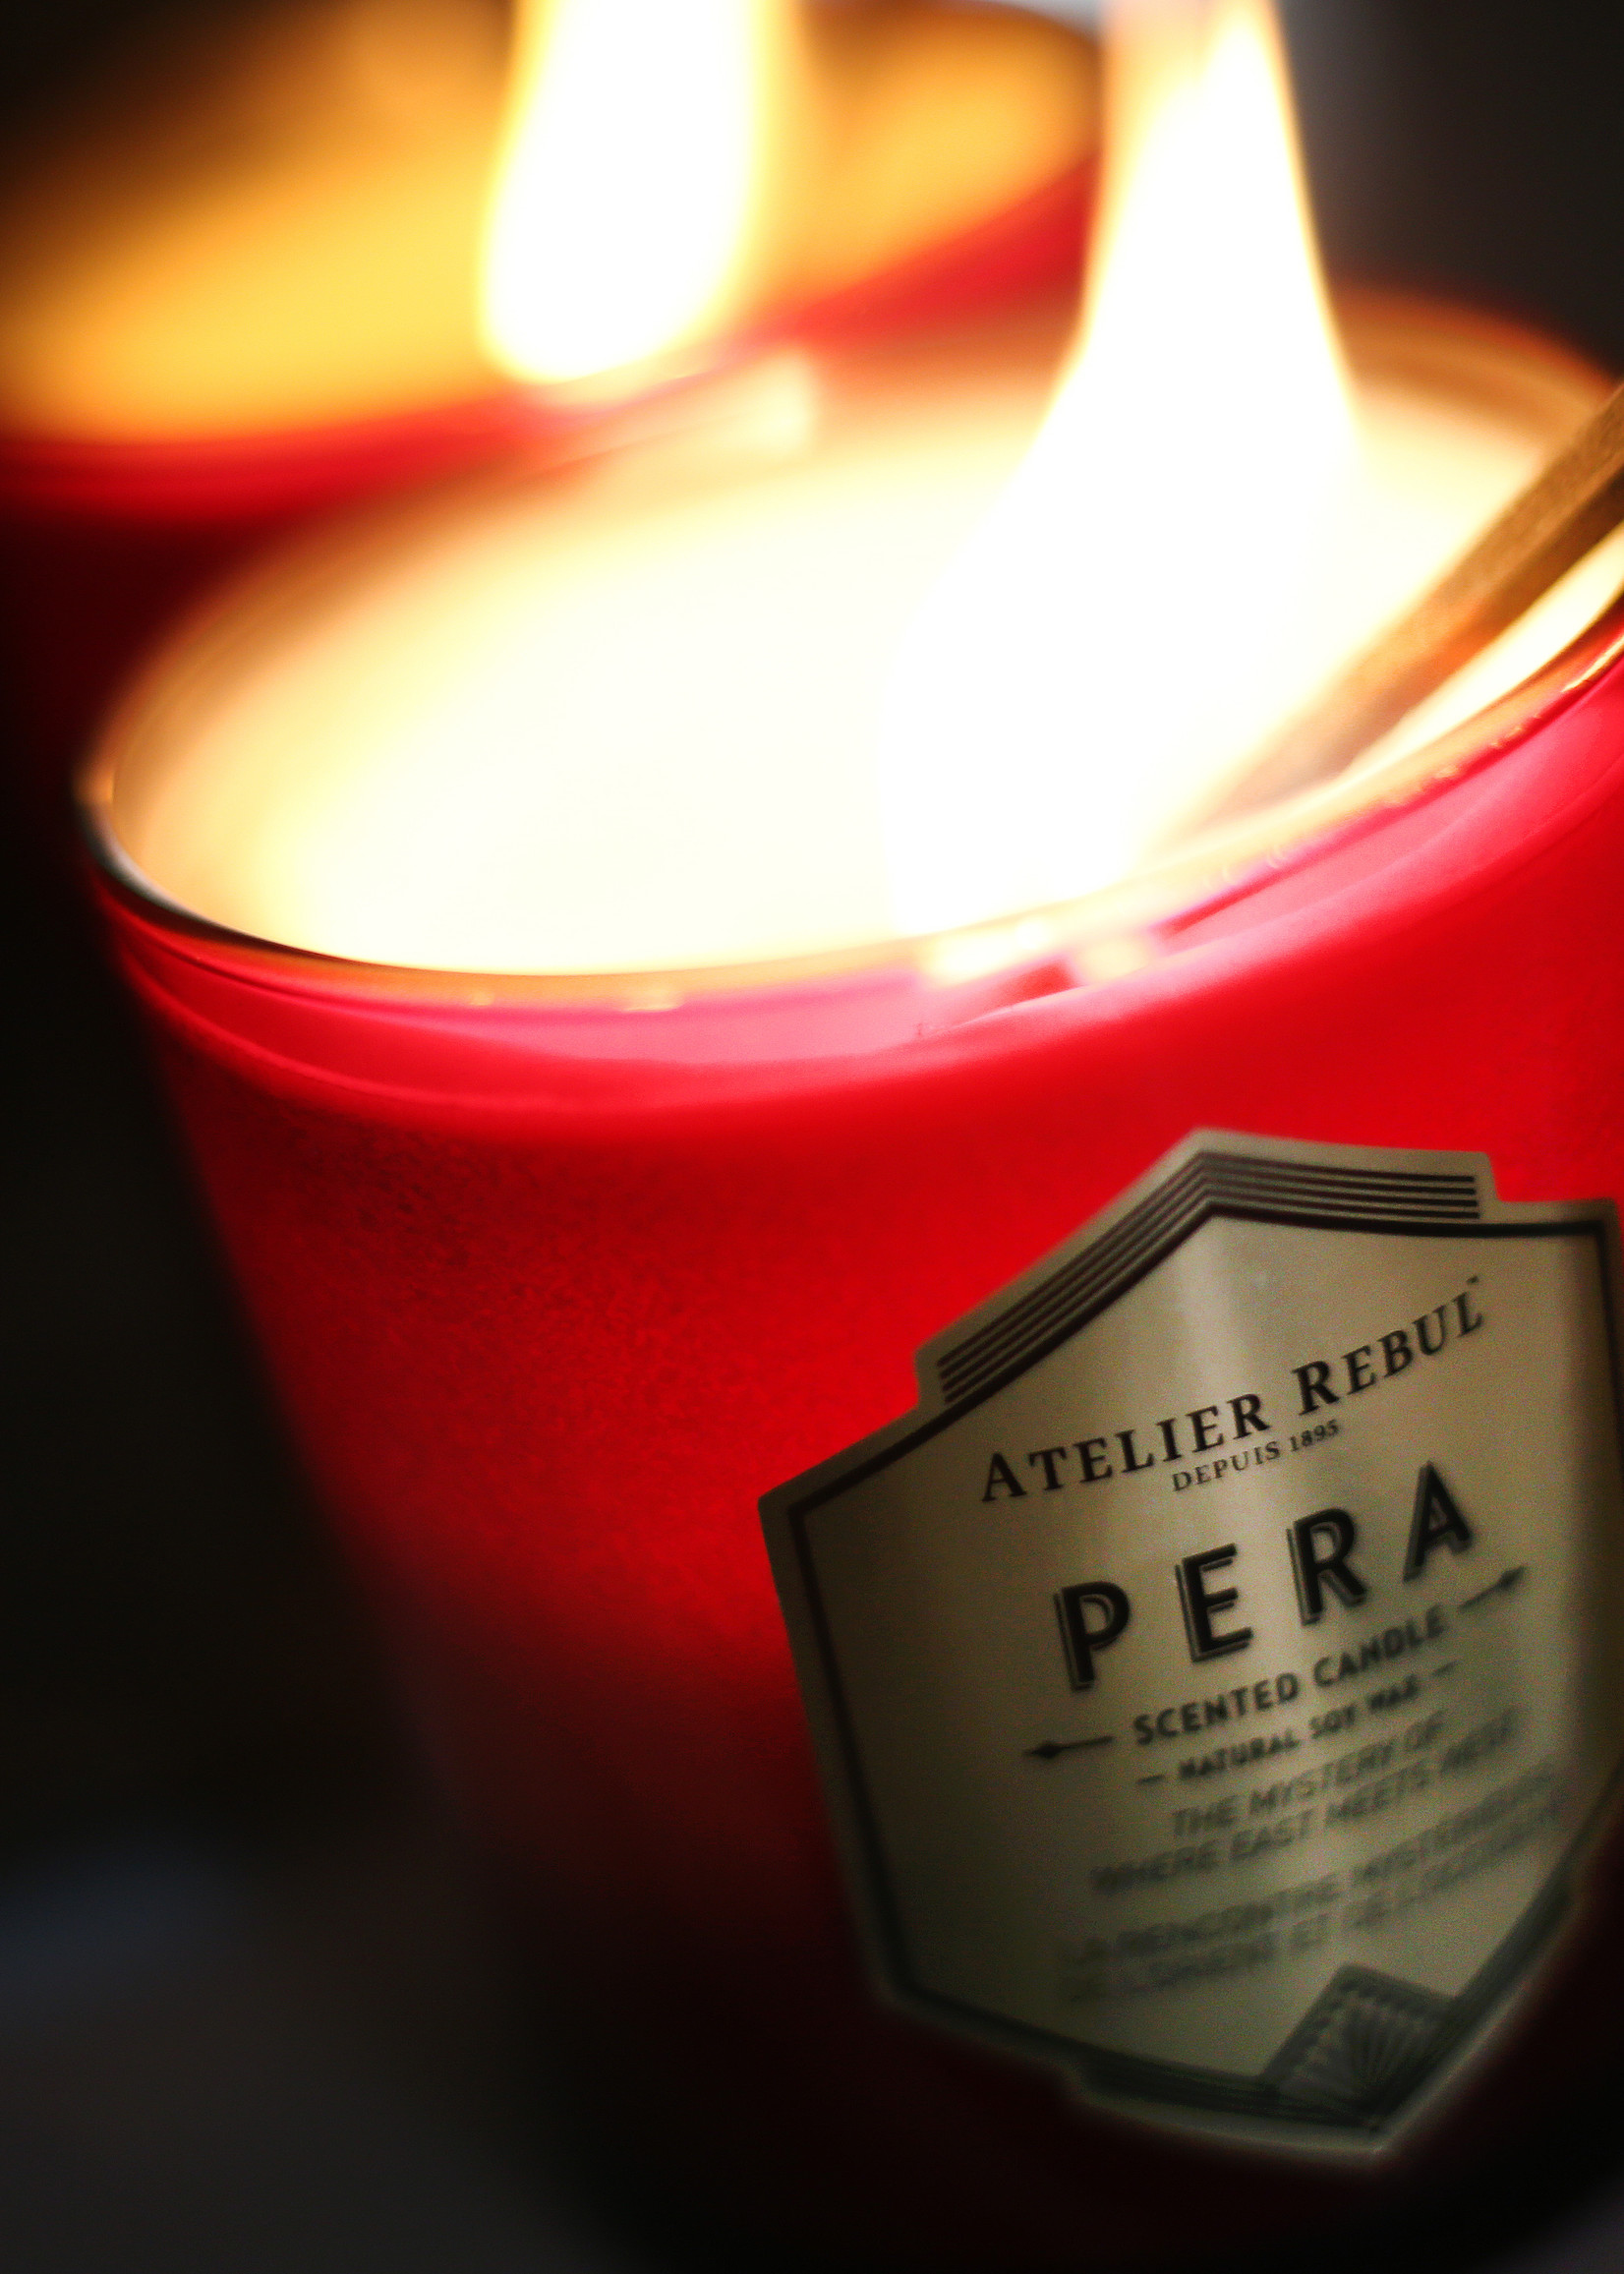 Atelier Rebul Pera Scented Candle 210 gr